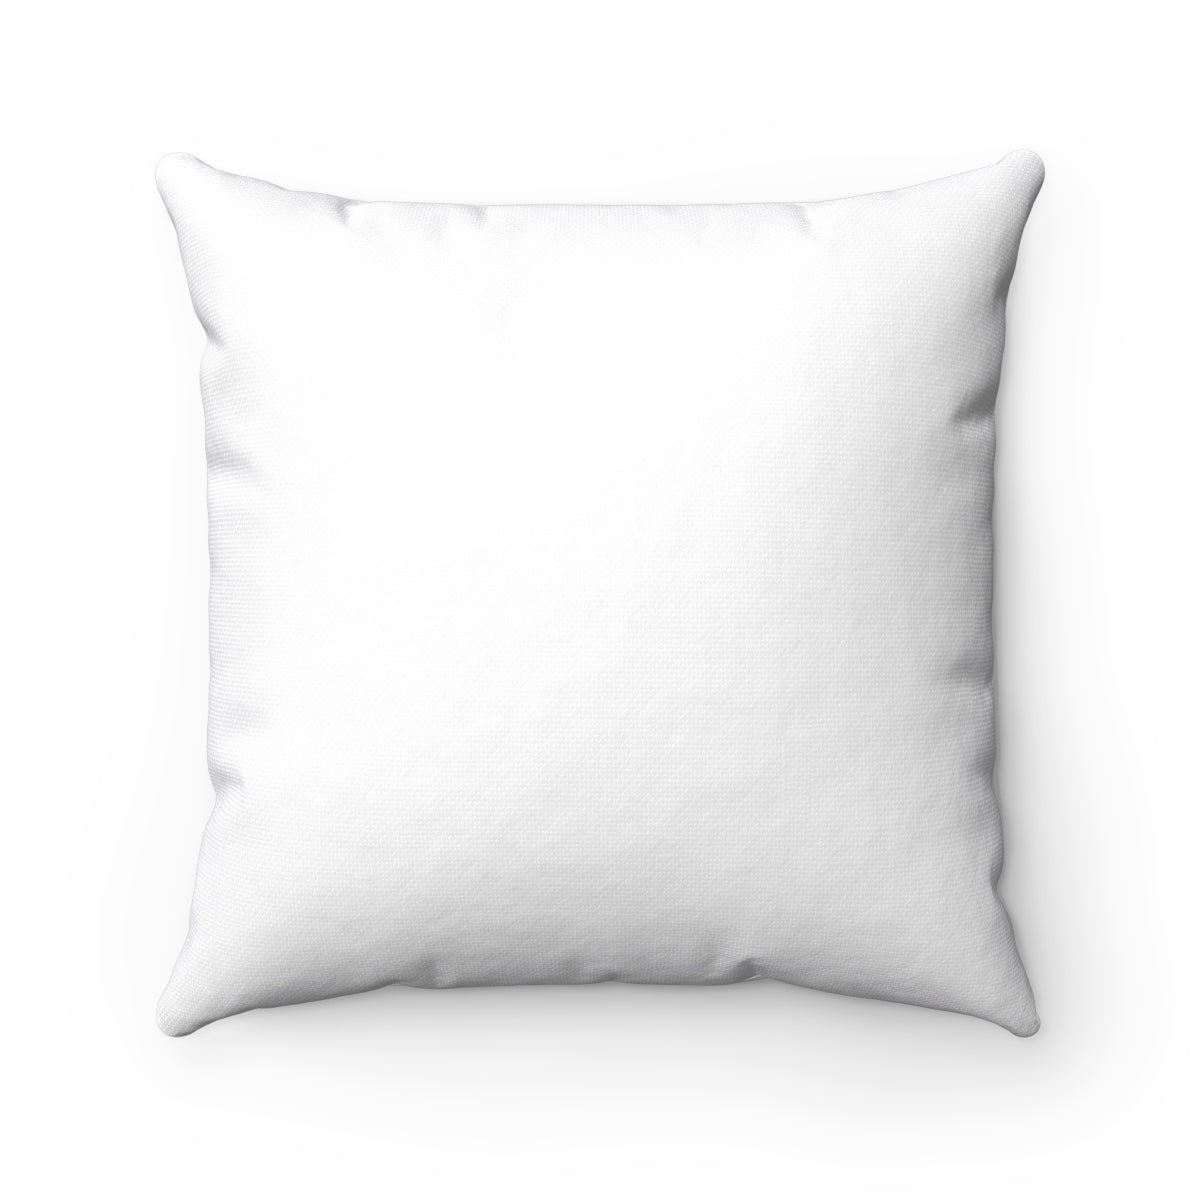 Grumpy is Optional: Square Pillow